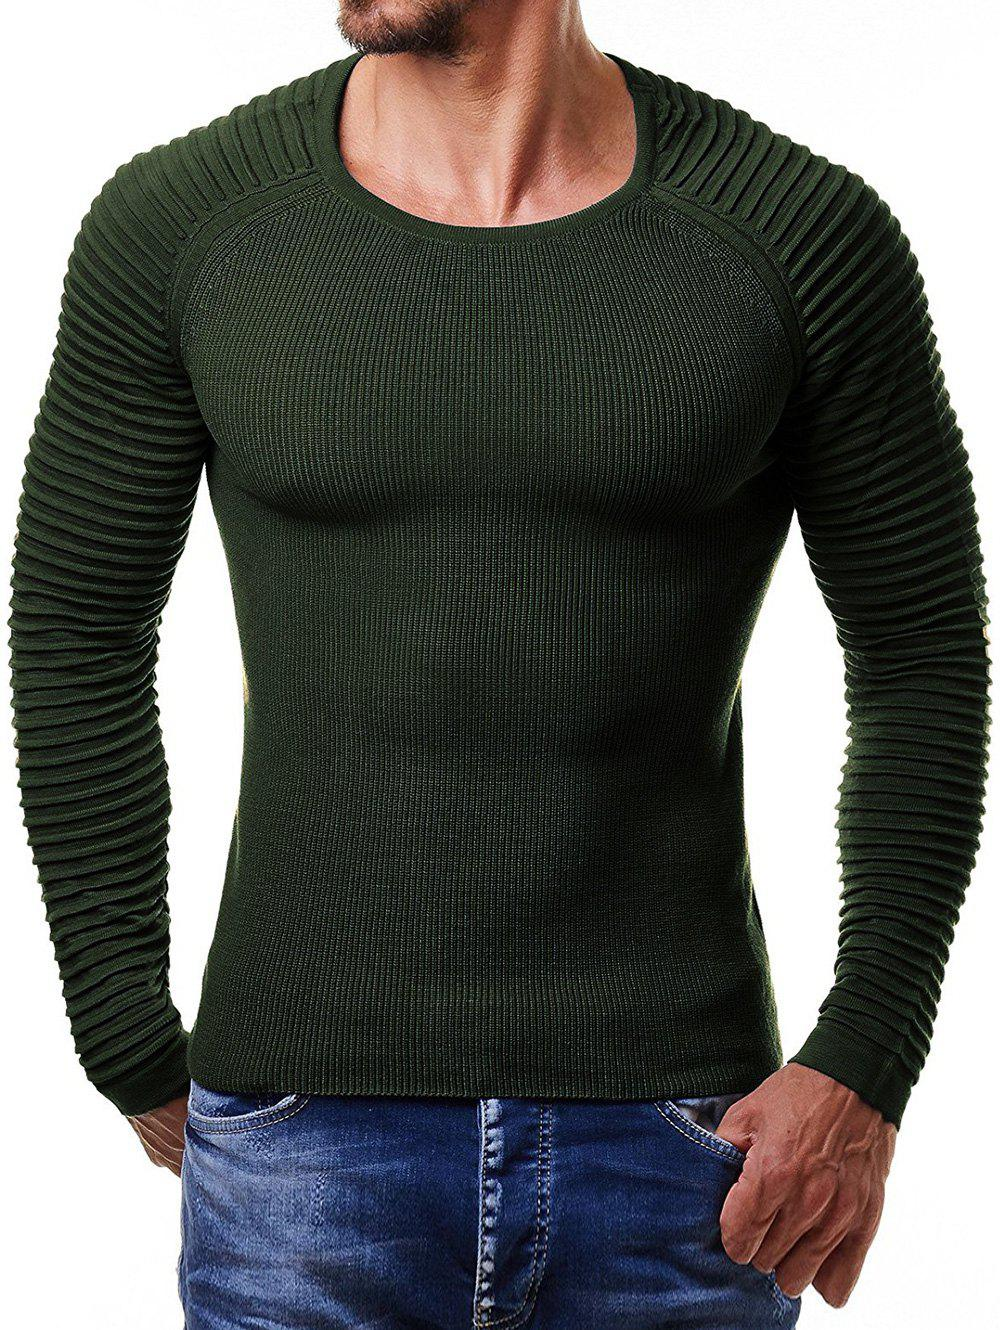 Pleated Raglan Sleeve Pullover Sweater - ARMY GREEN M